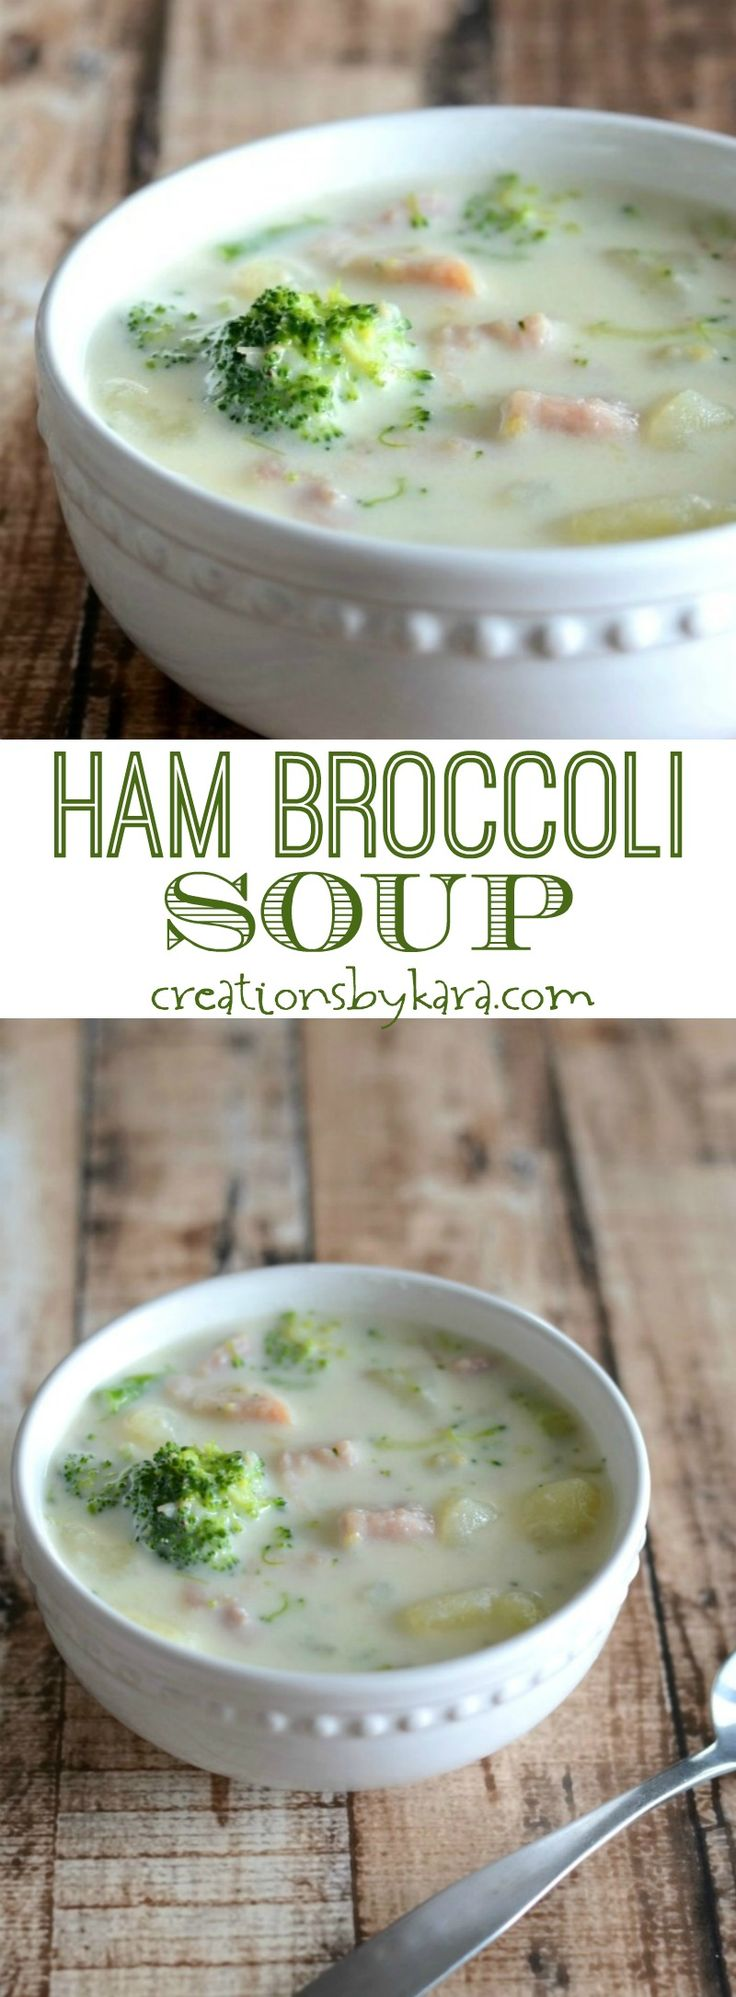 Hearty and delicious Ham Broccoli Soup- a perfect soup recipe to warm you up! With ham, broccoli, potatoes, and Swiss cheese, this soup is hearty and delicious.